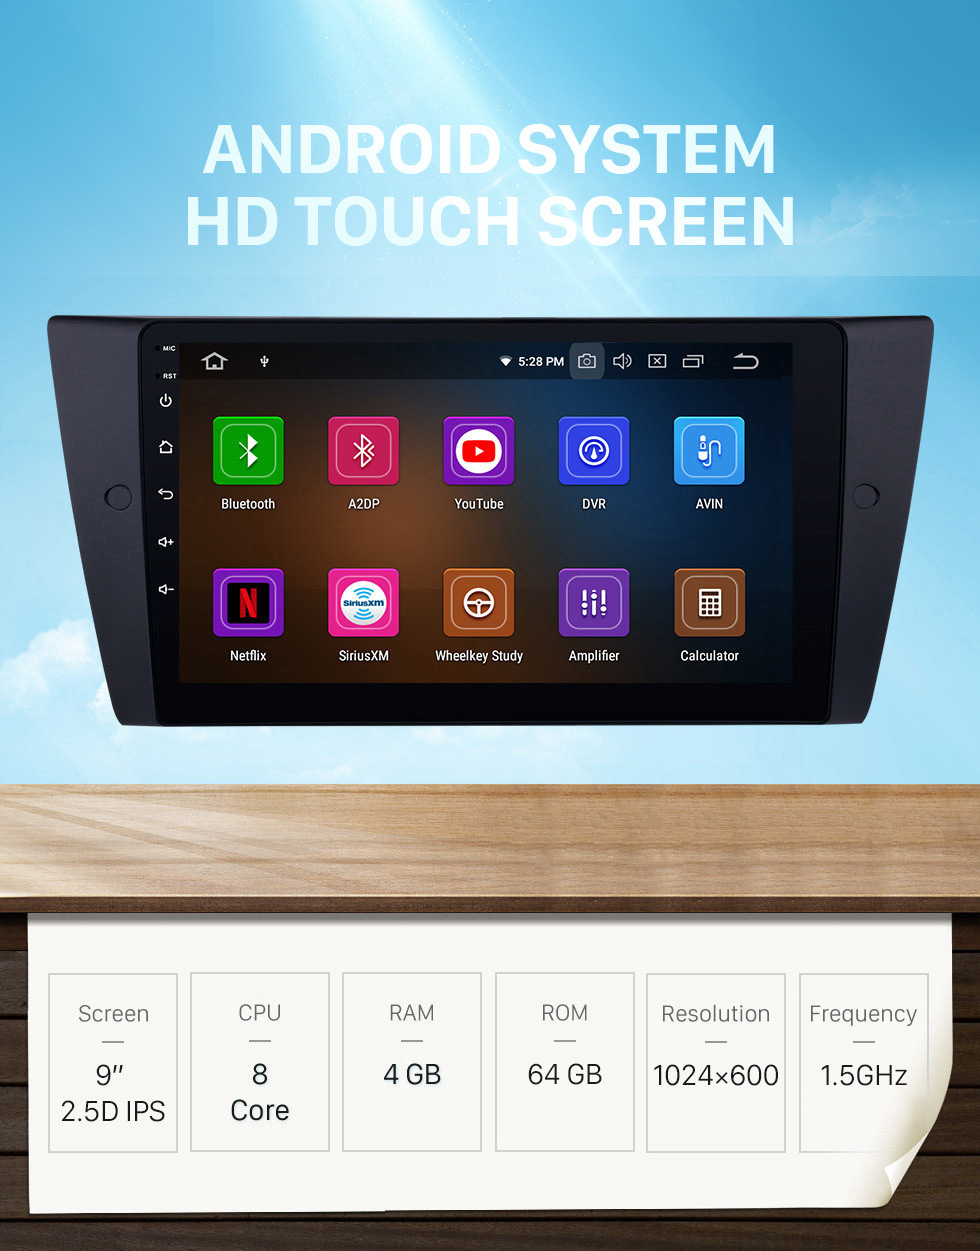 Seicane HD Touchscreen 9 inch Android 10.0 2005-2012 BMW 3 Series E90 E91 E92 E93 316i 318i 320i 320si 323i 325i 328i 330i 335i 335is M3 316d 318d 320d 325d 330d 335d GPS Navi radio tv bluetooth support DVD player 4G WIFI